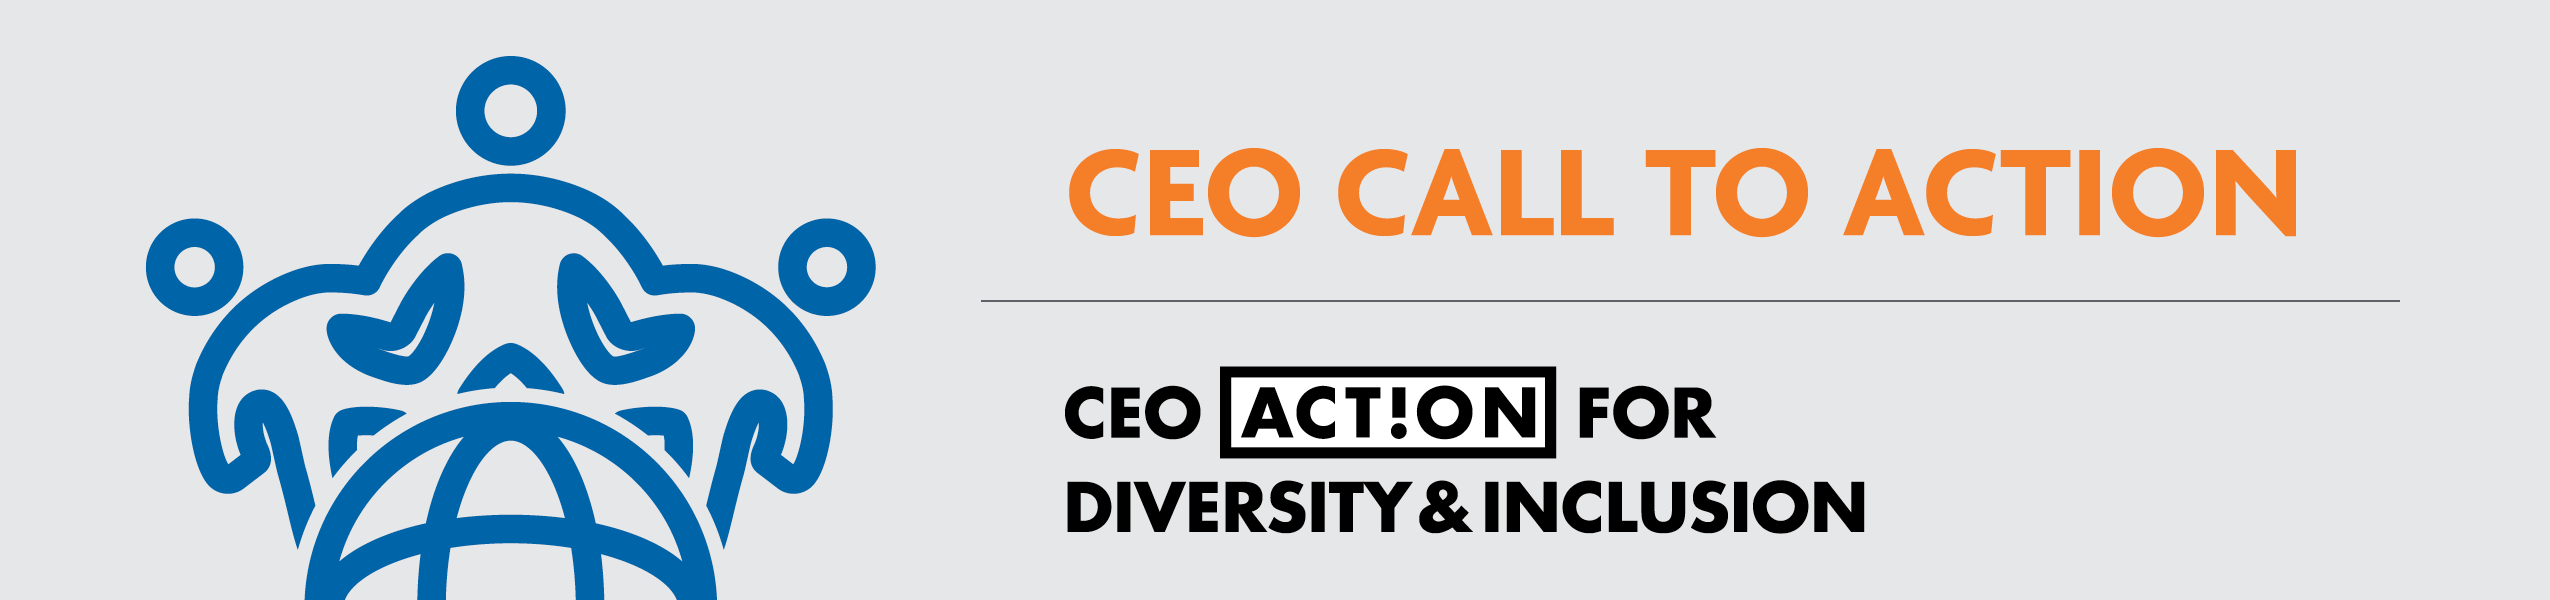 CEO Call to Action